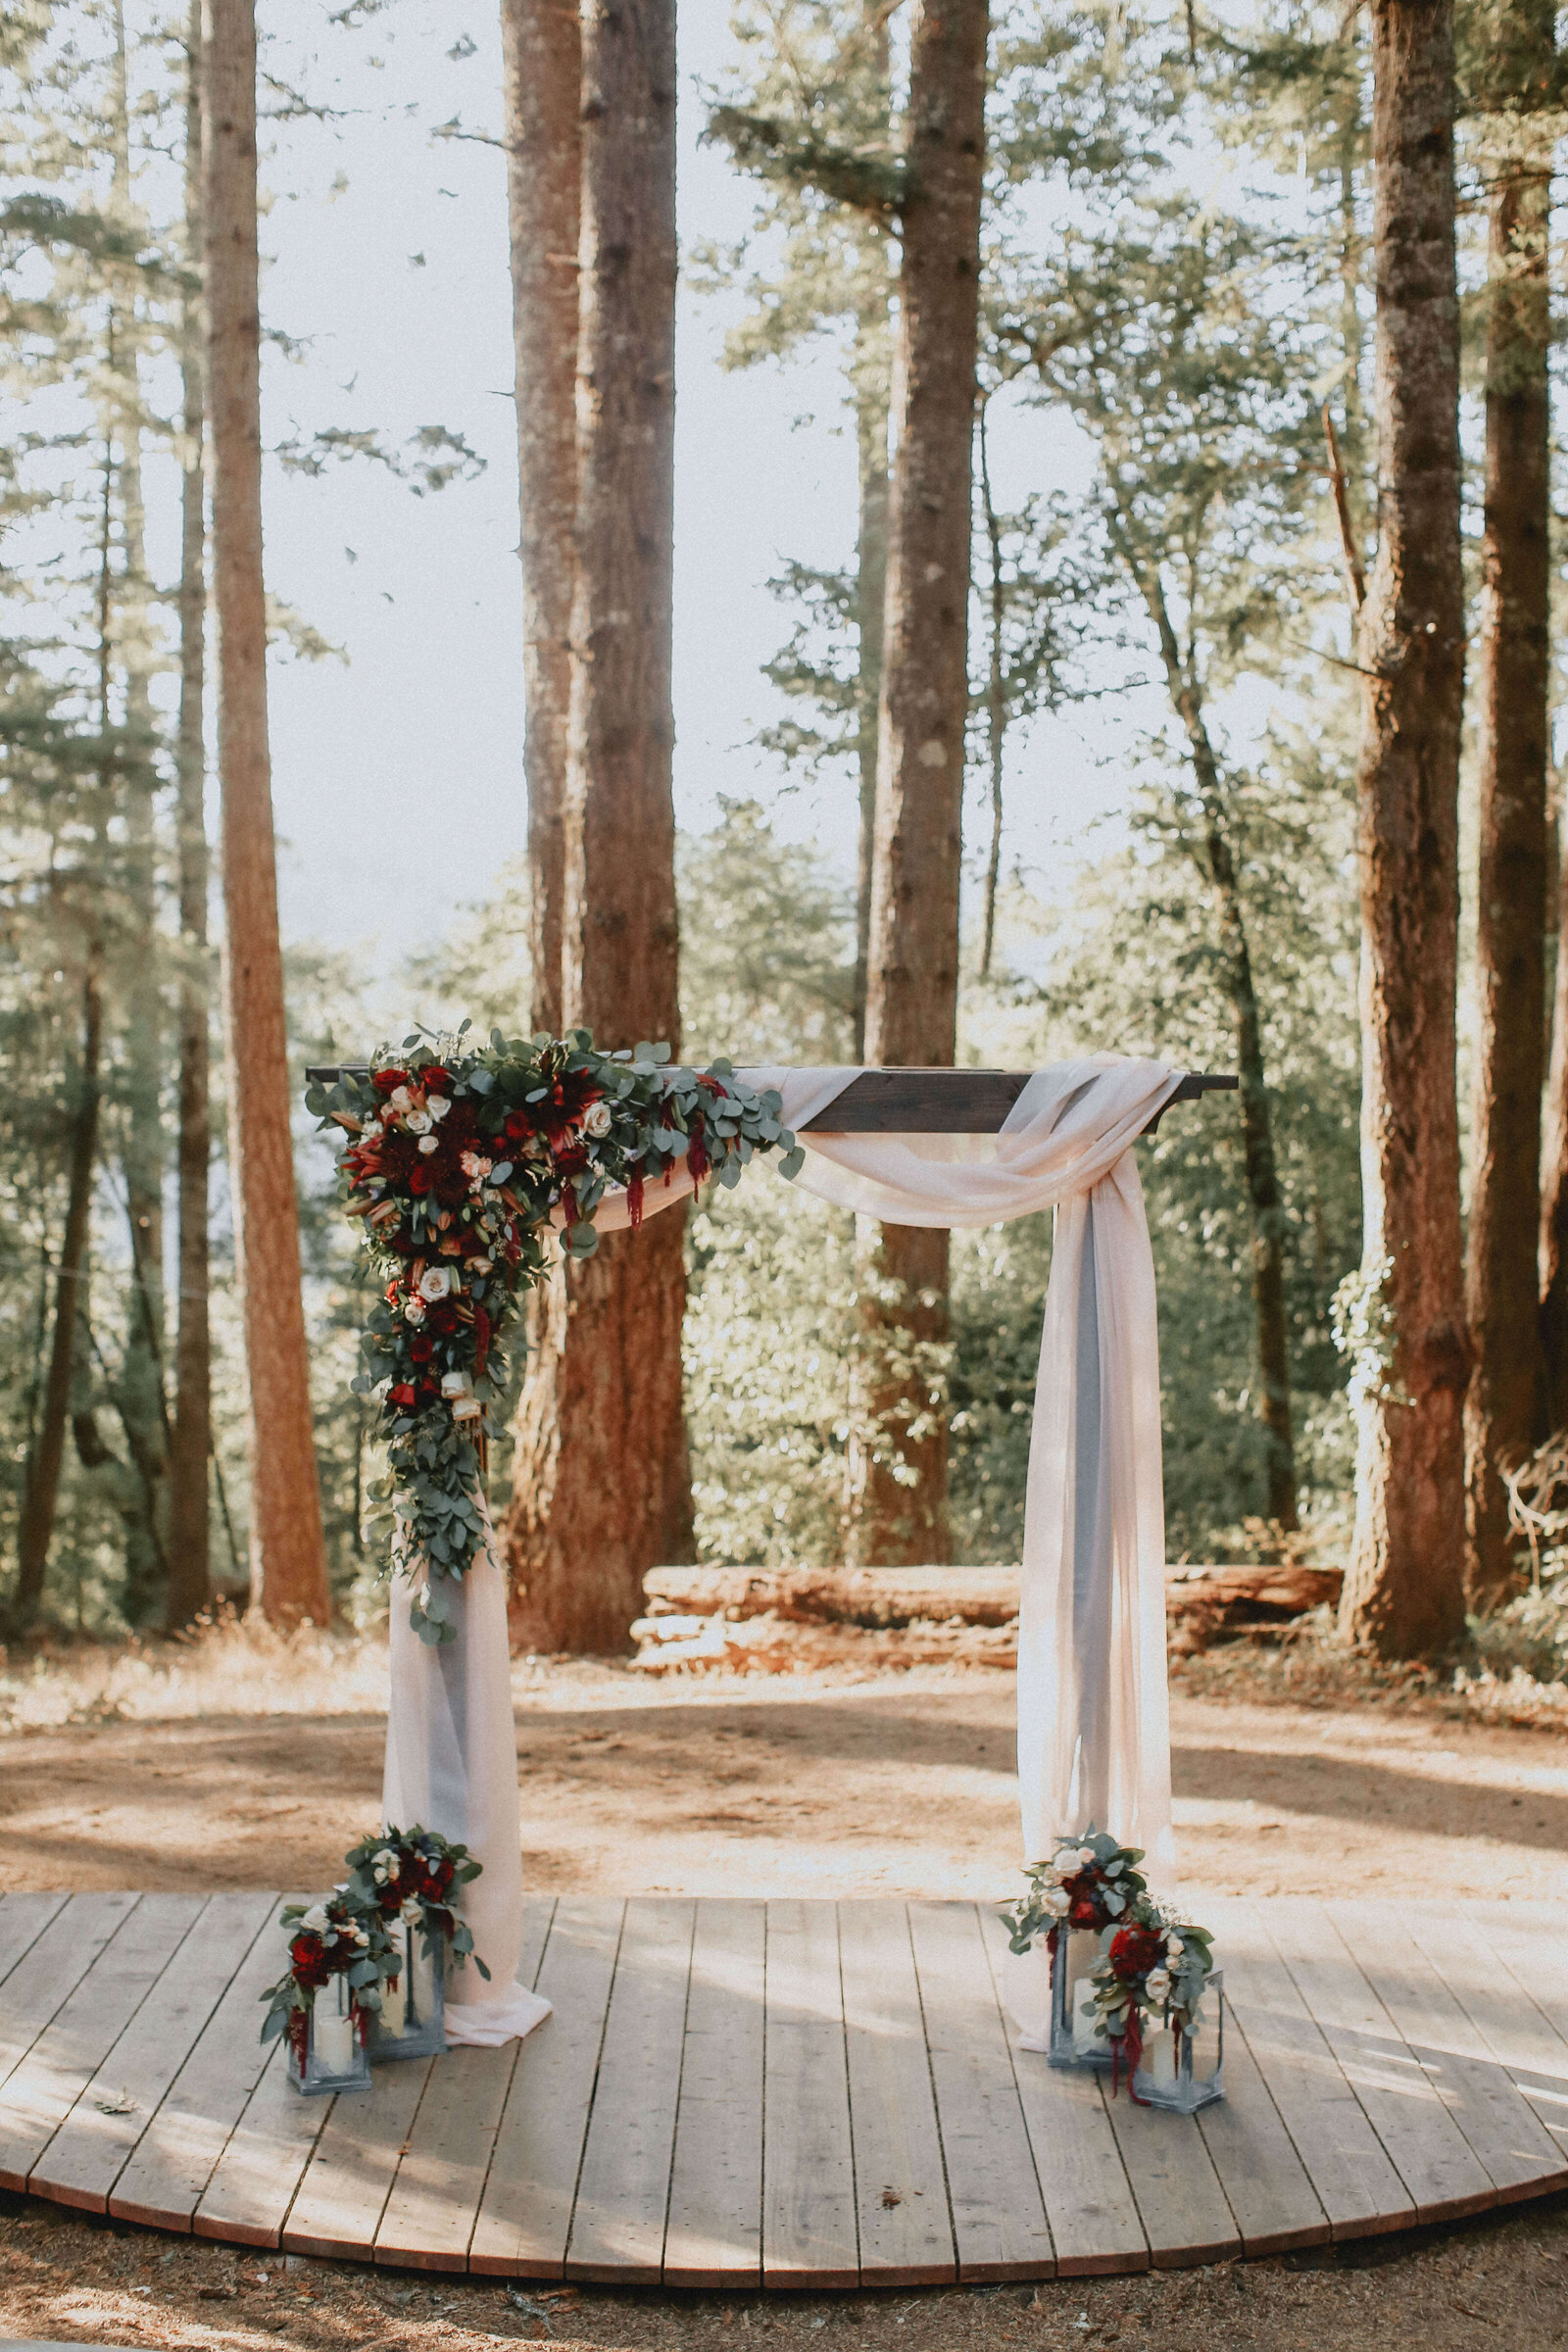 union-hotel-Occidental-california-wedding-sonoma-county-elopement-events-by-gianna-somona-wedding-planner-11